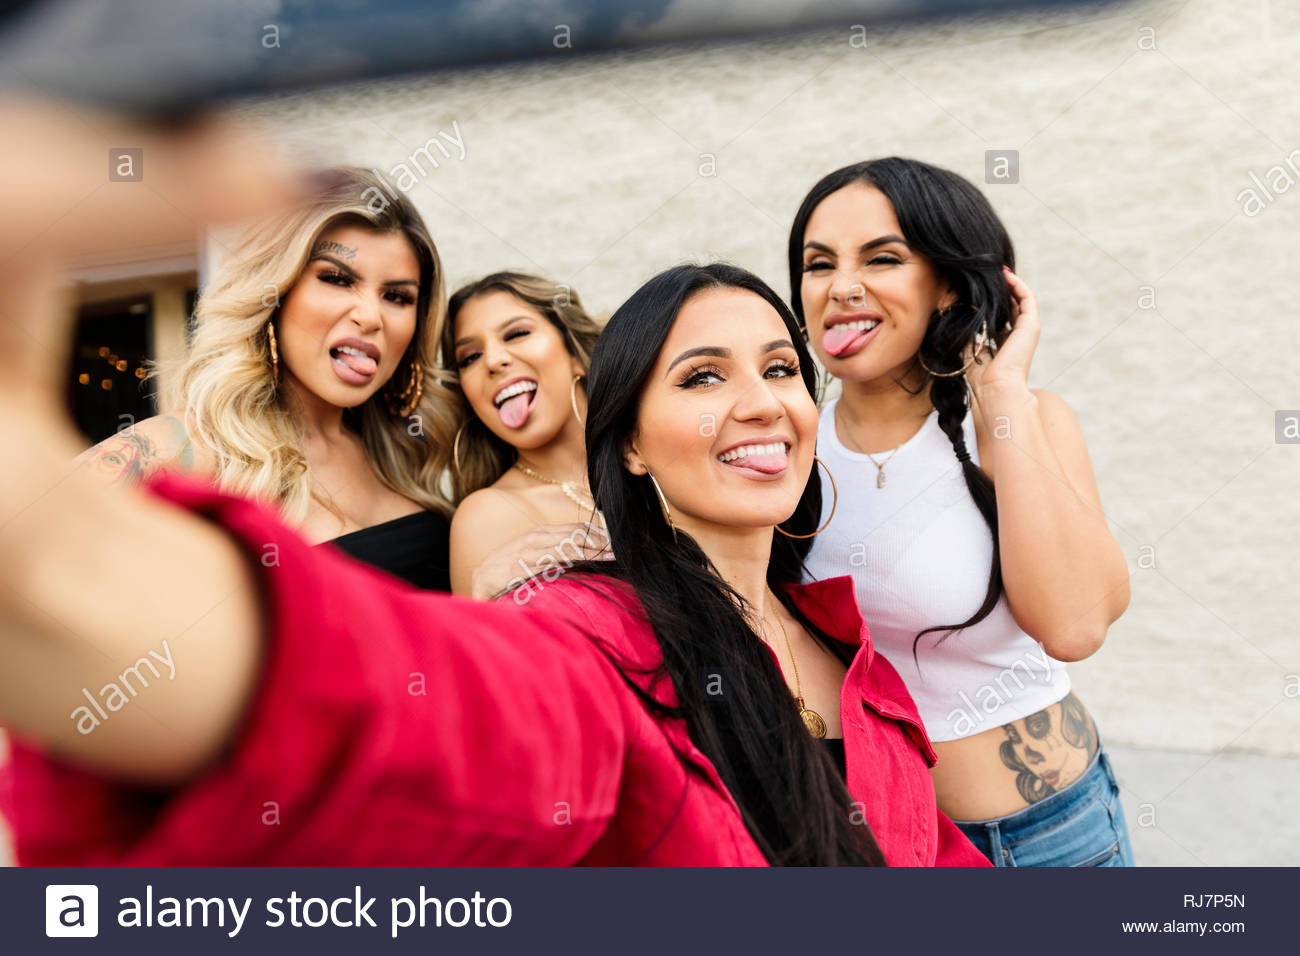 Latinx women friends sticking tongues out, taking selfie Stock Photo